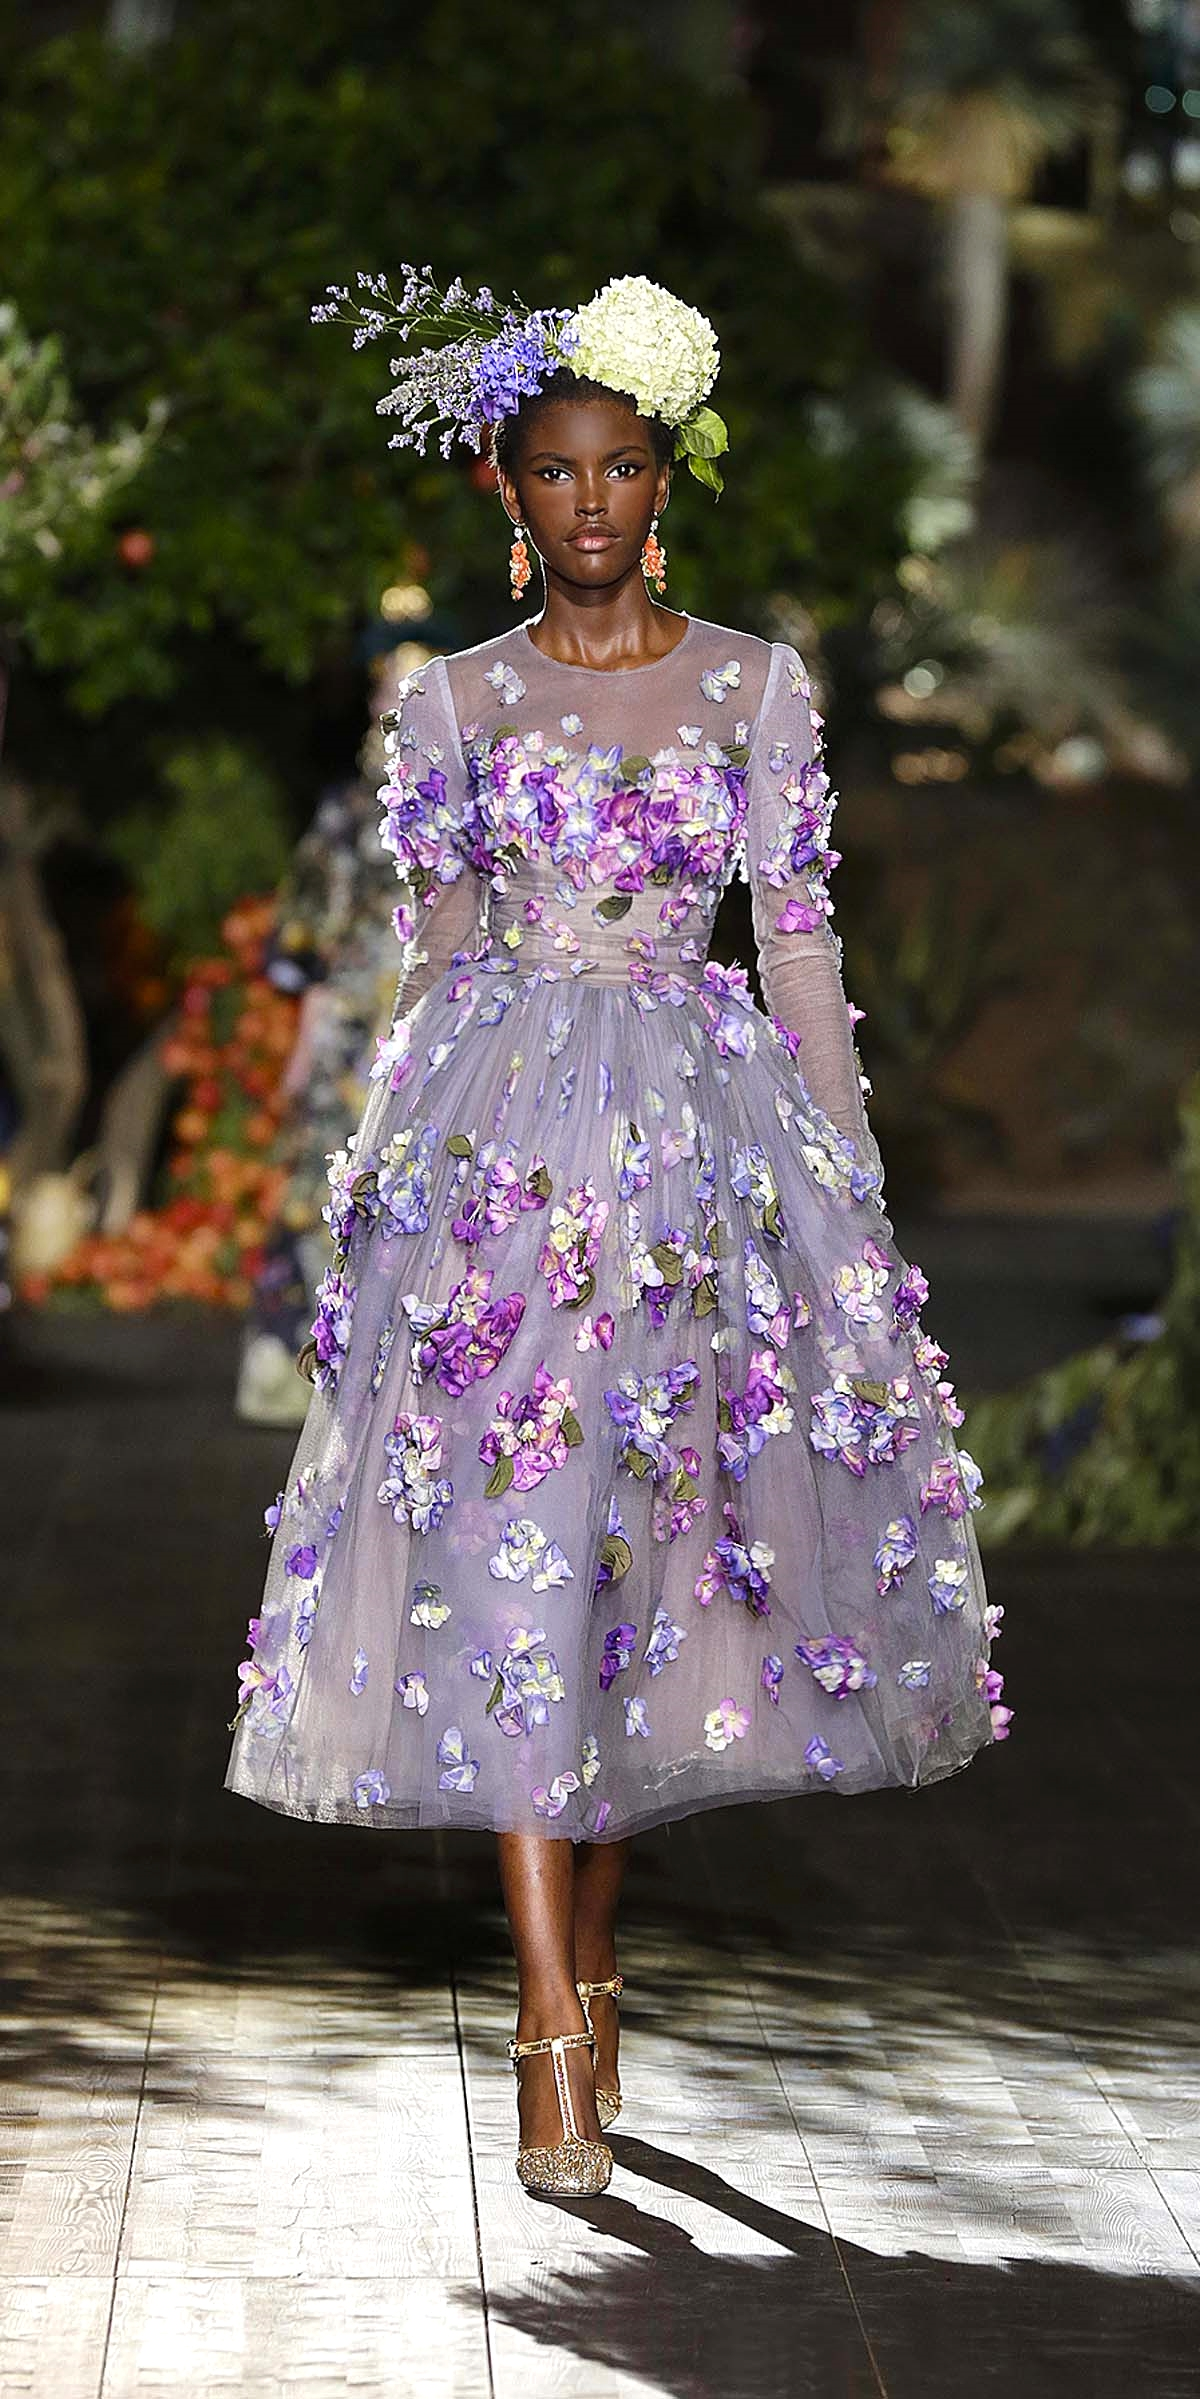 Dolce & Gabbana Alta Moda Fall/Winter 2015-16